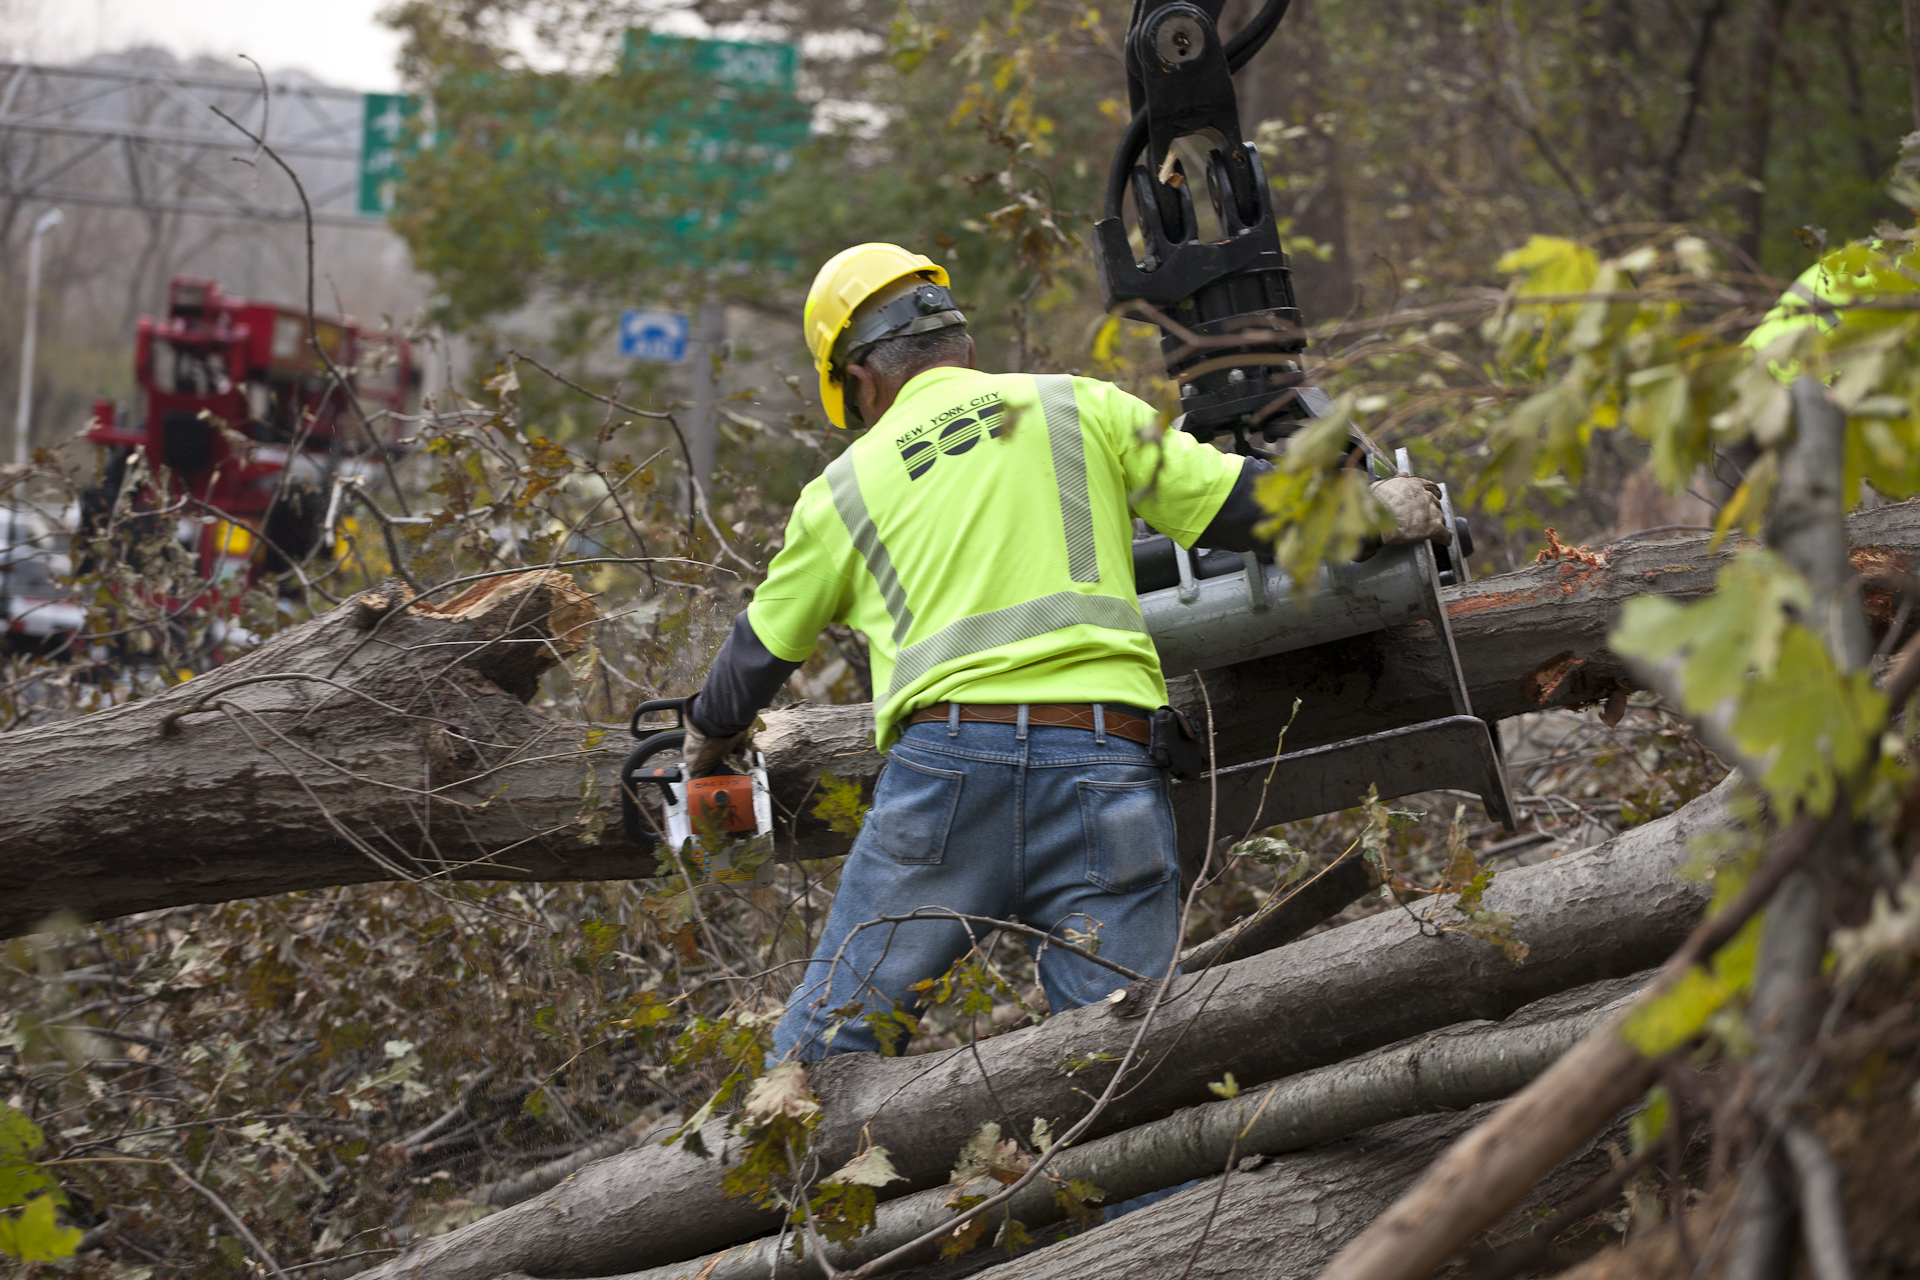 Nfpa 704 Why Is Worker Safety Neglected In Post Disaster Cleanups